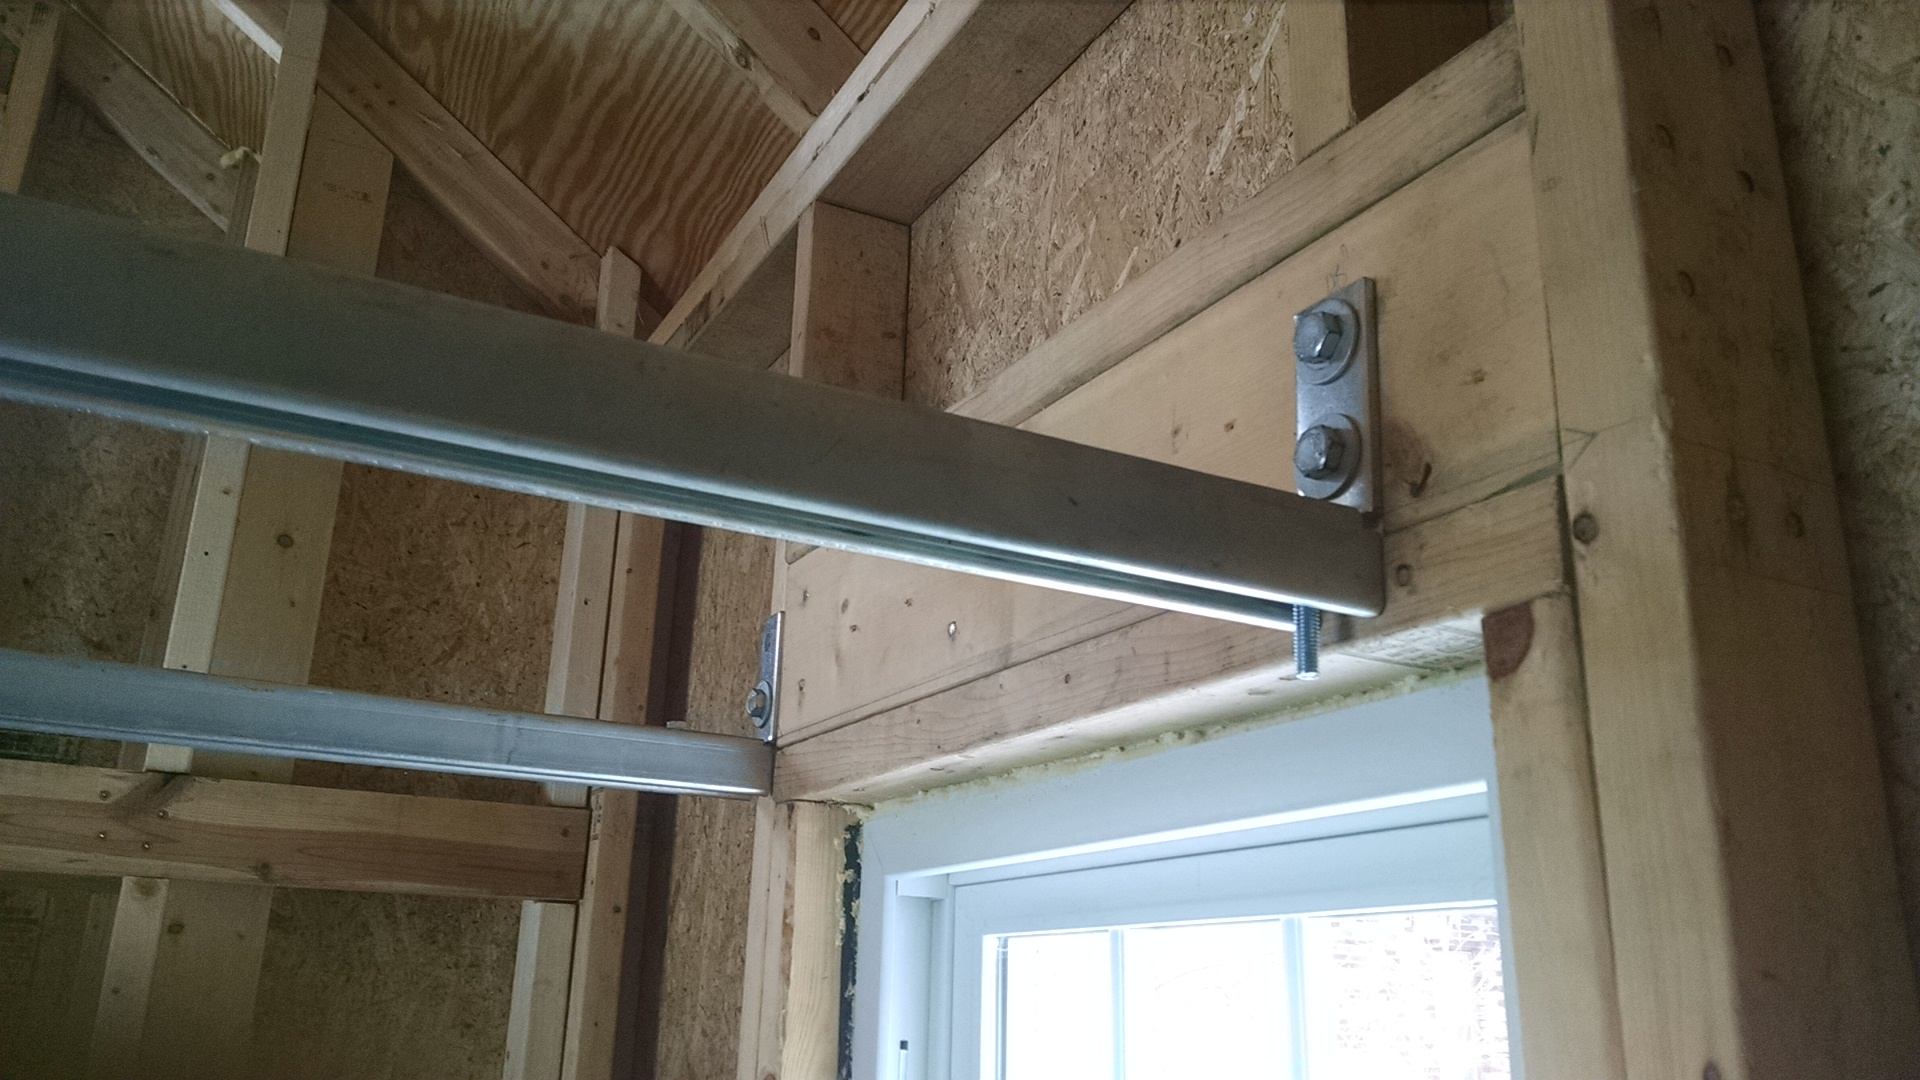 c-channel used as joists; and lag bolted to a reinforced window header